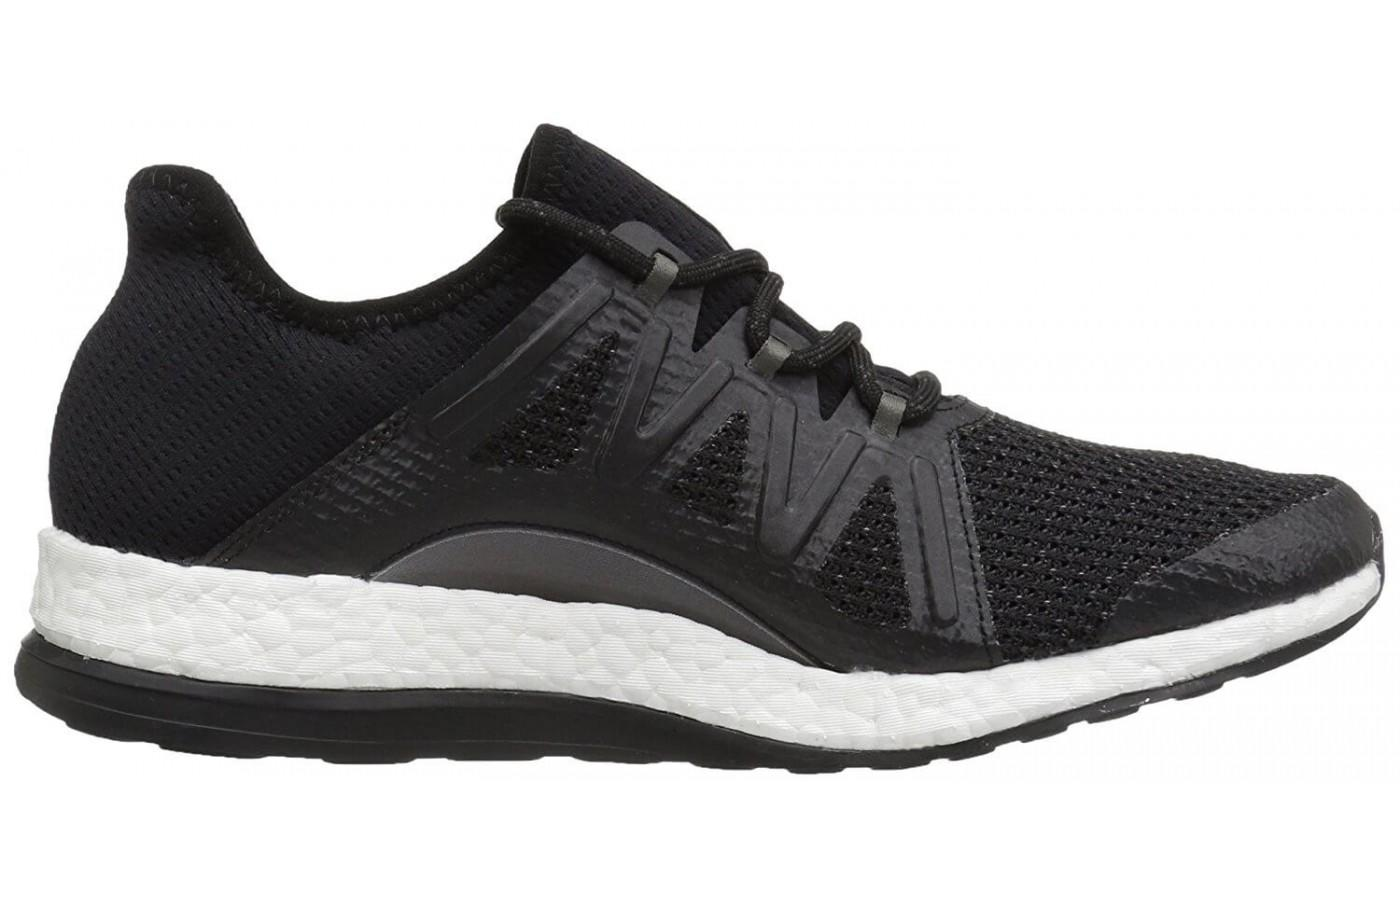 44f6b281e ... the stylish adidas pureBOOST Xpose is a sleek and smart-looking  everyday trainer ...